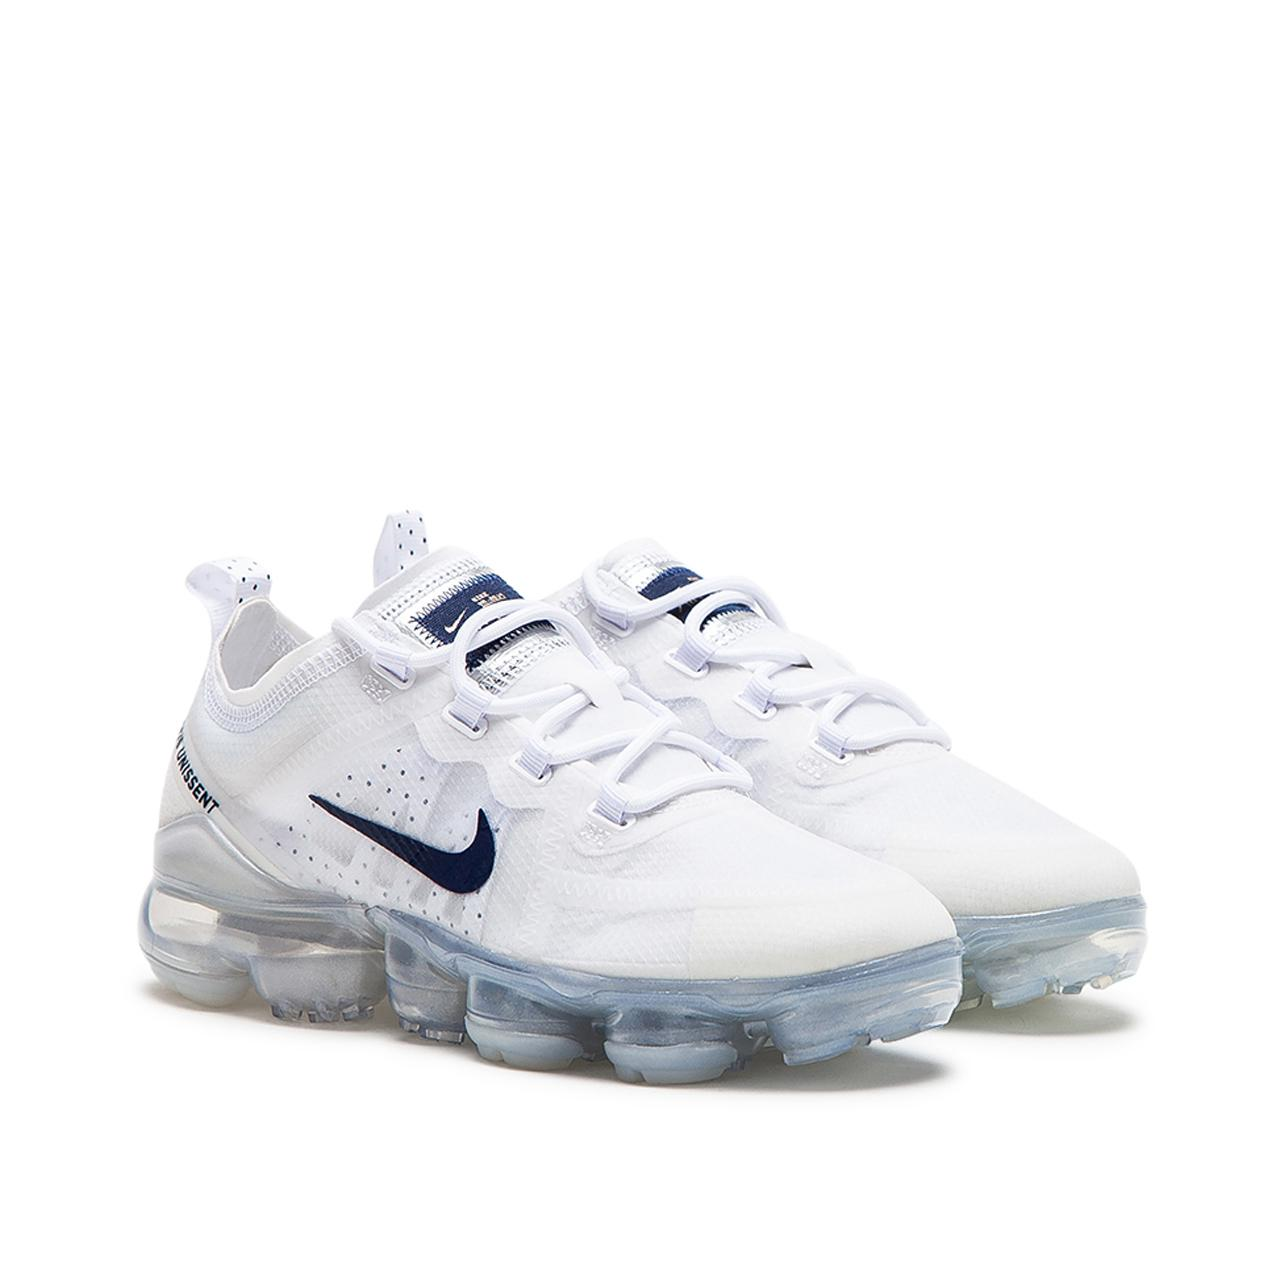 Nike Synthetic Wmns Air Vapormax 2019